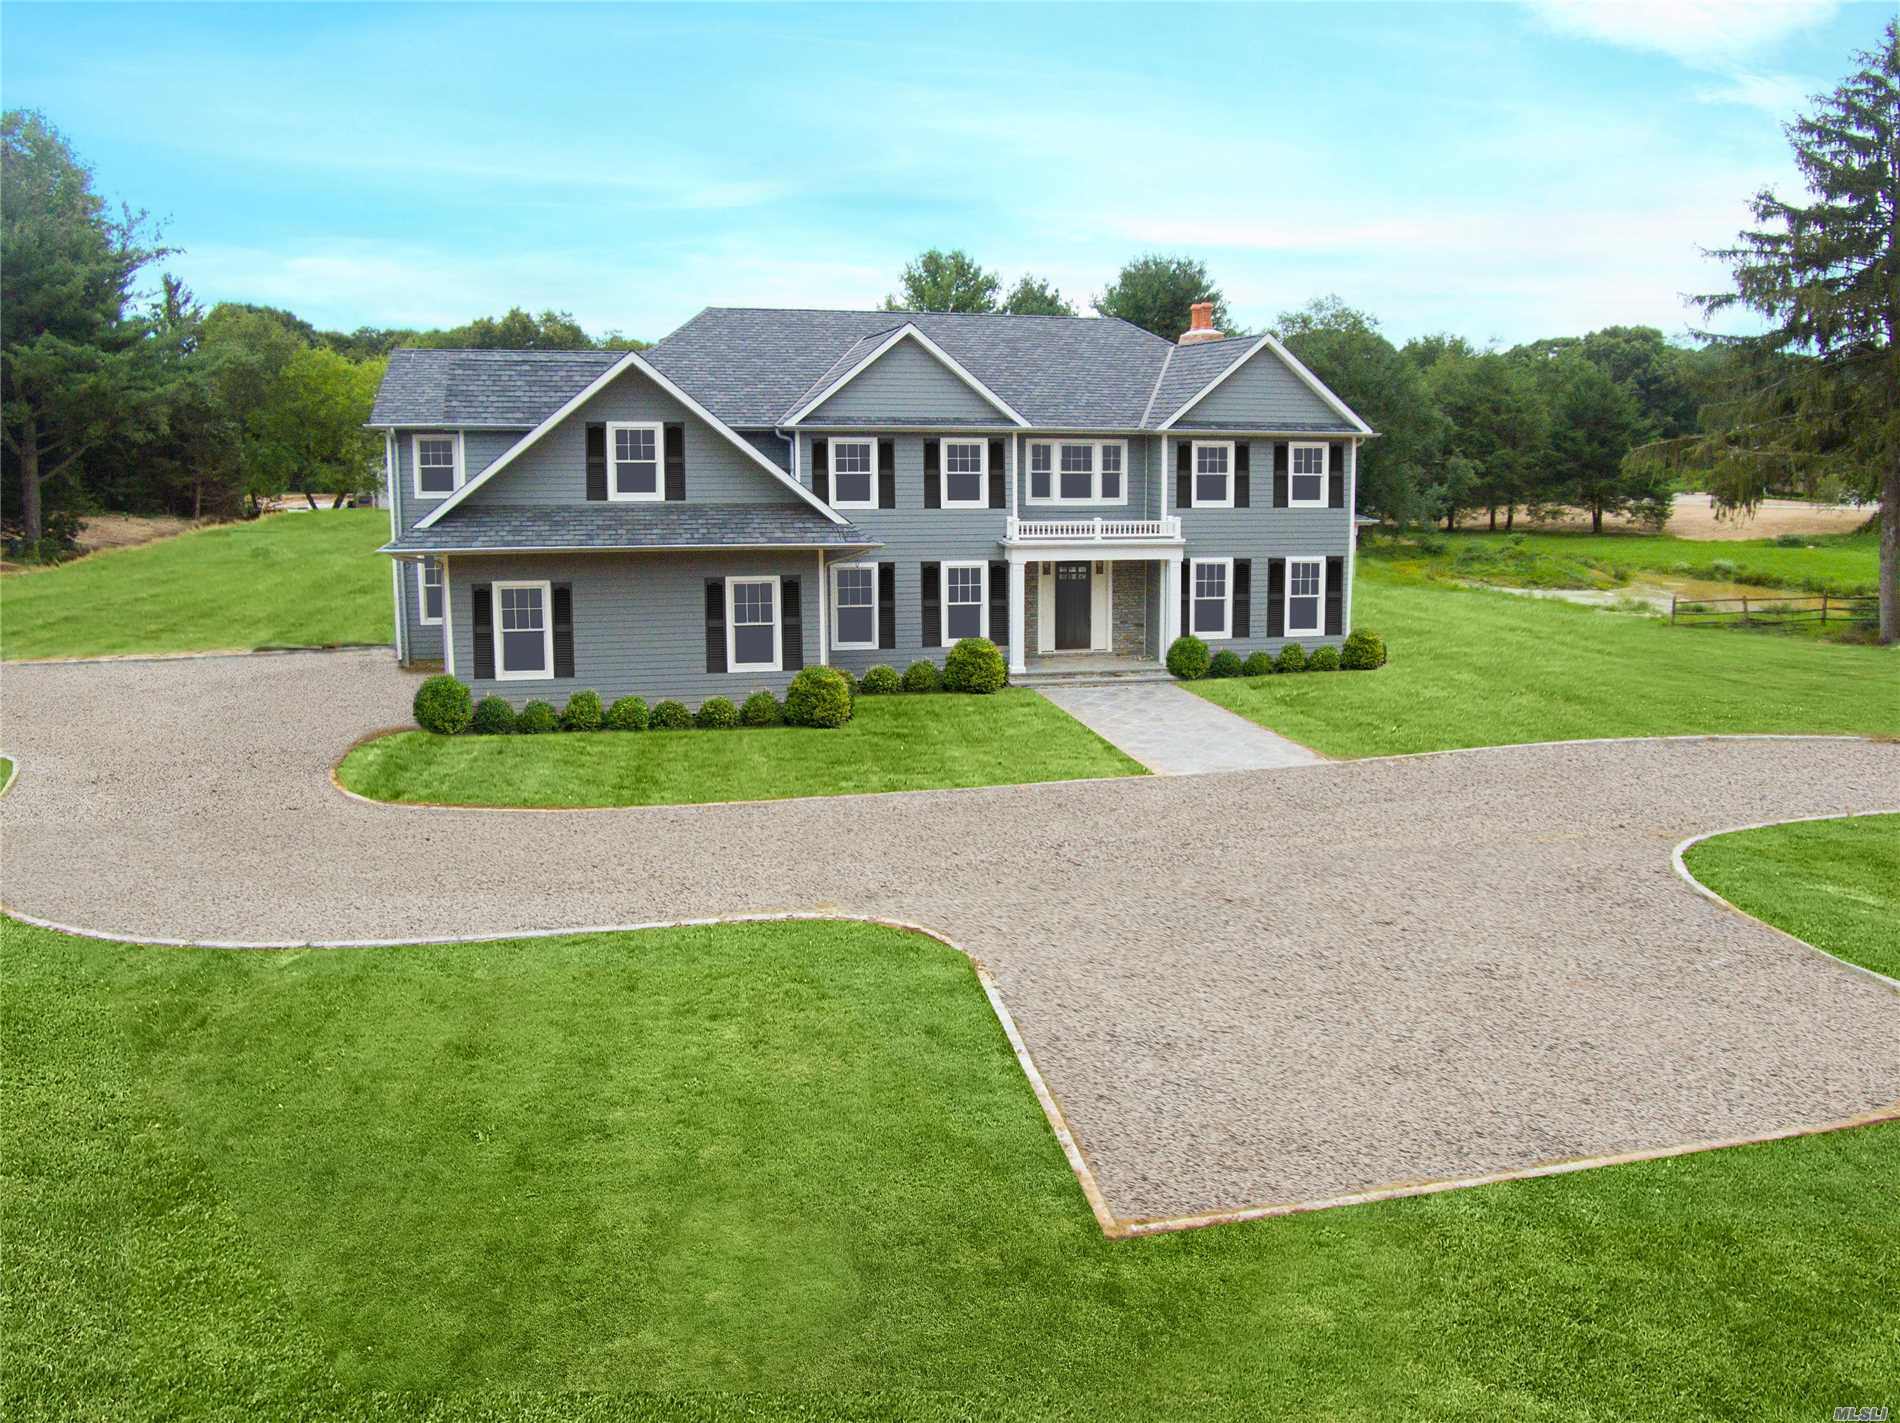 New Construction. Beautiful 6 Bedroom, 5.5 Bath Colonial Located On 4.8 Pristine Acres With A Pond. 3 Bedroom 2 1/2 Bathroom Guest Cottage On Property Also.  Close To Rr And Oyster Bay Beaches. Taxes To Be Determined After Construction Is Finished.